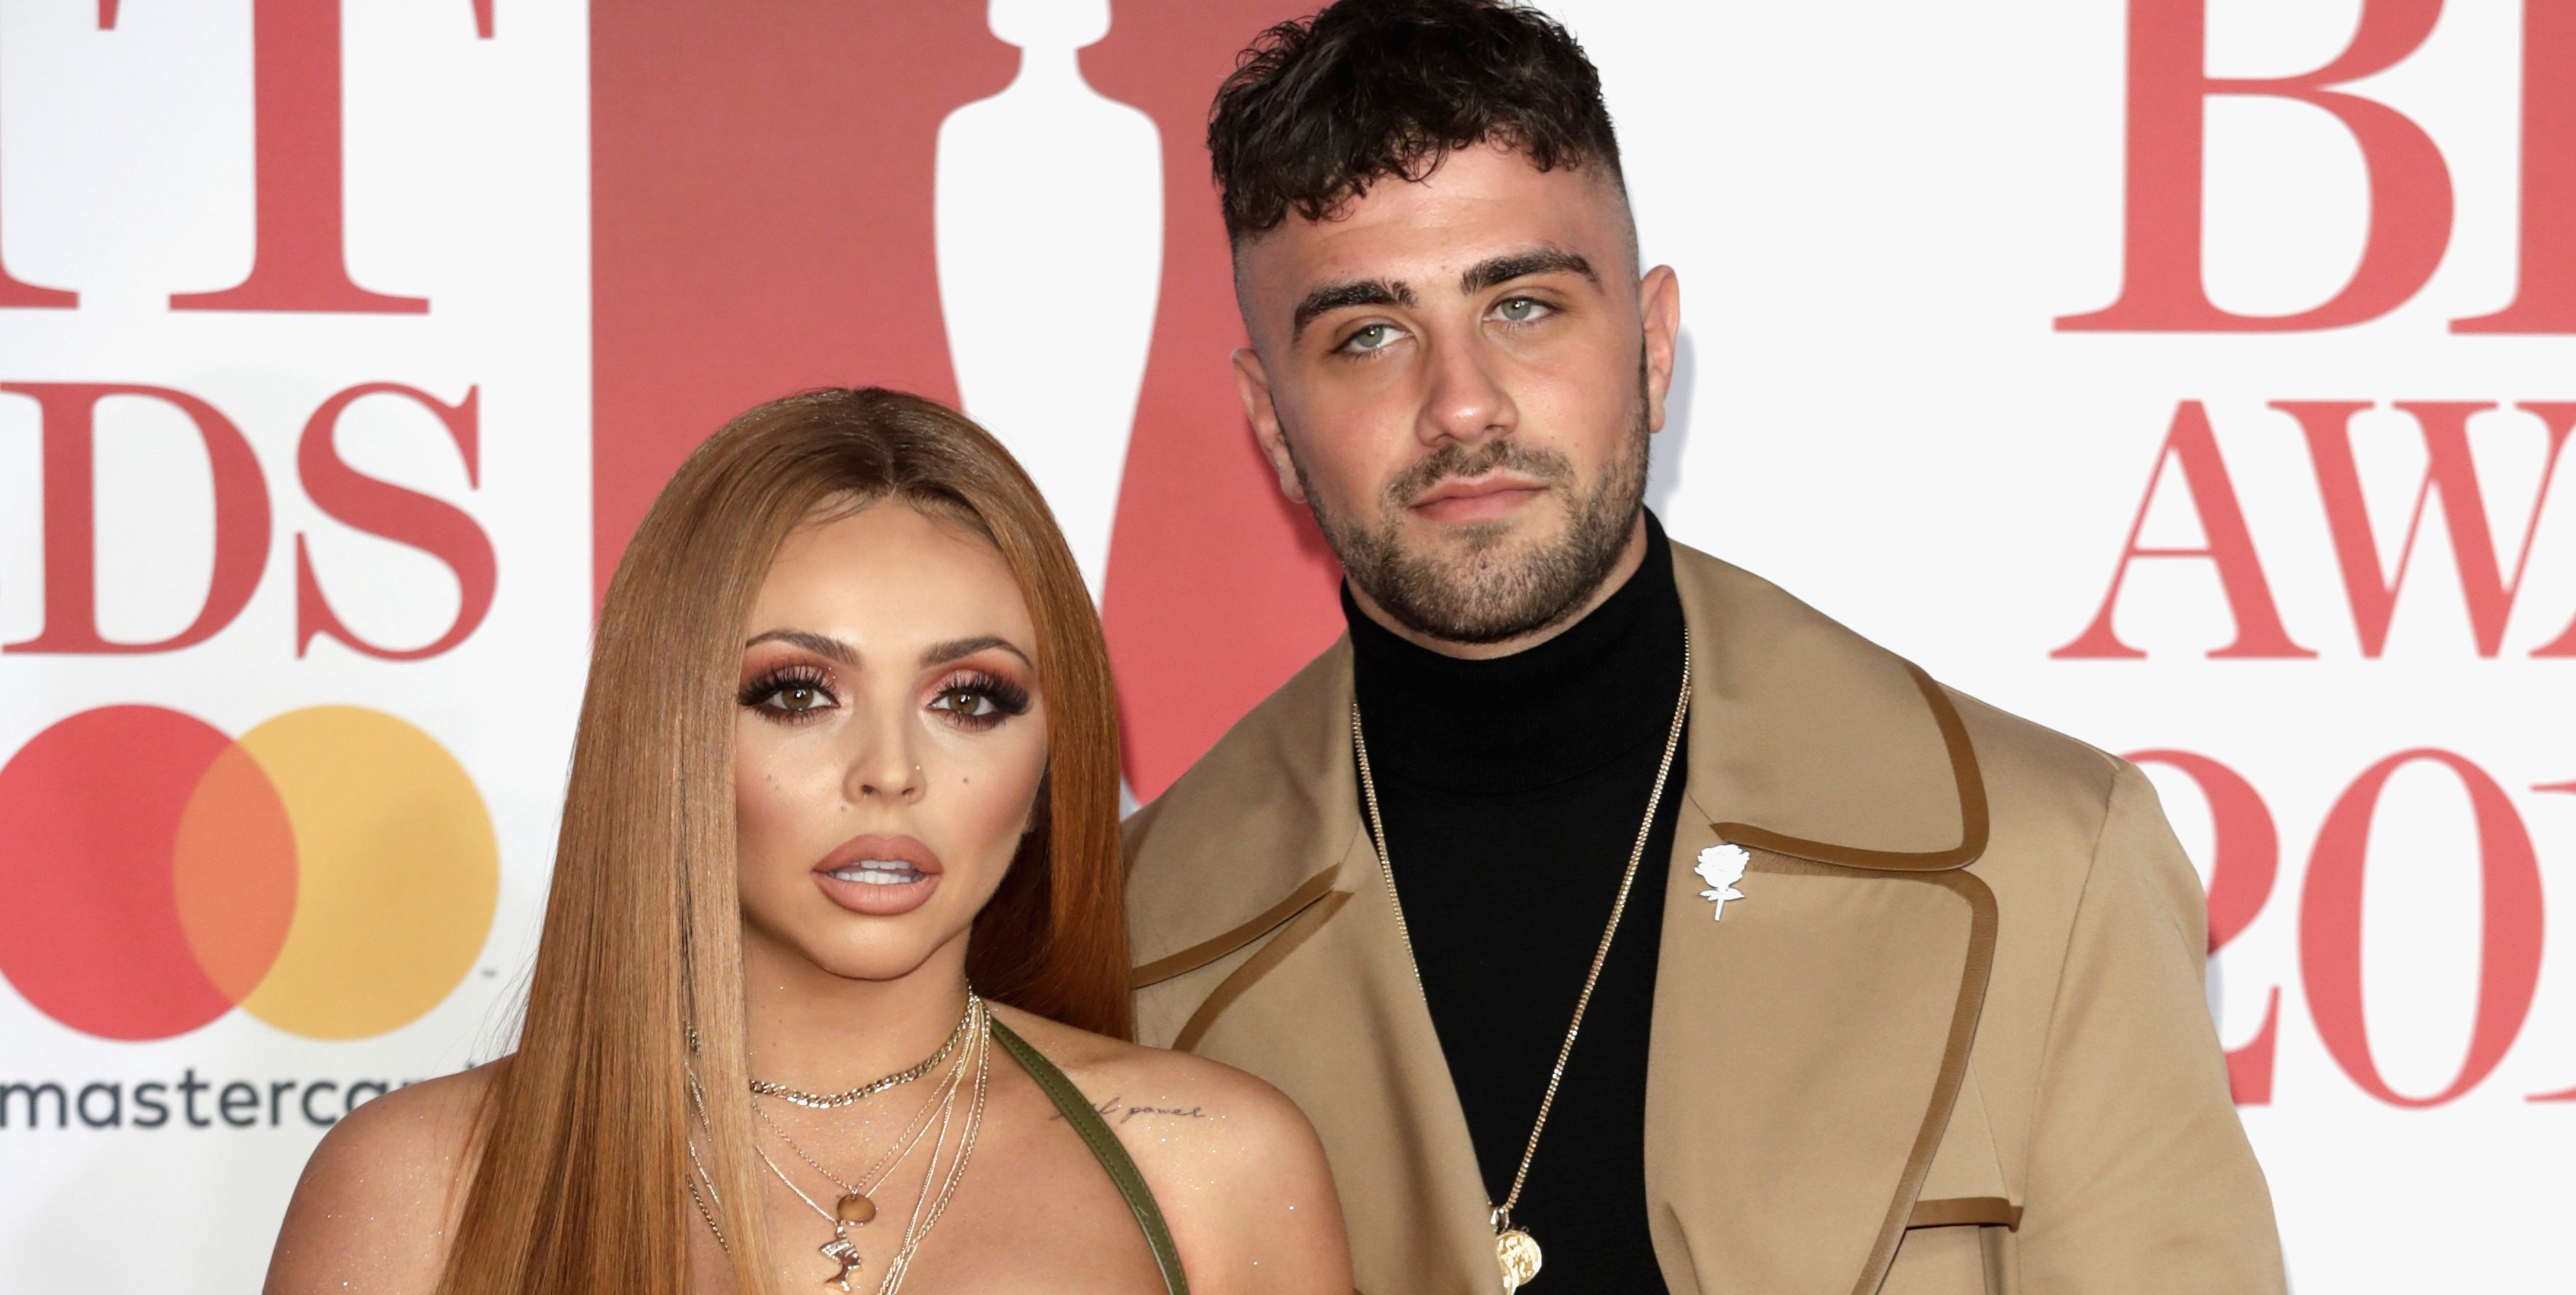 Little Mix's Jesy Nelson and her boyfriend have broken up